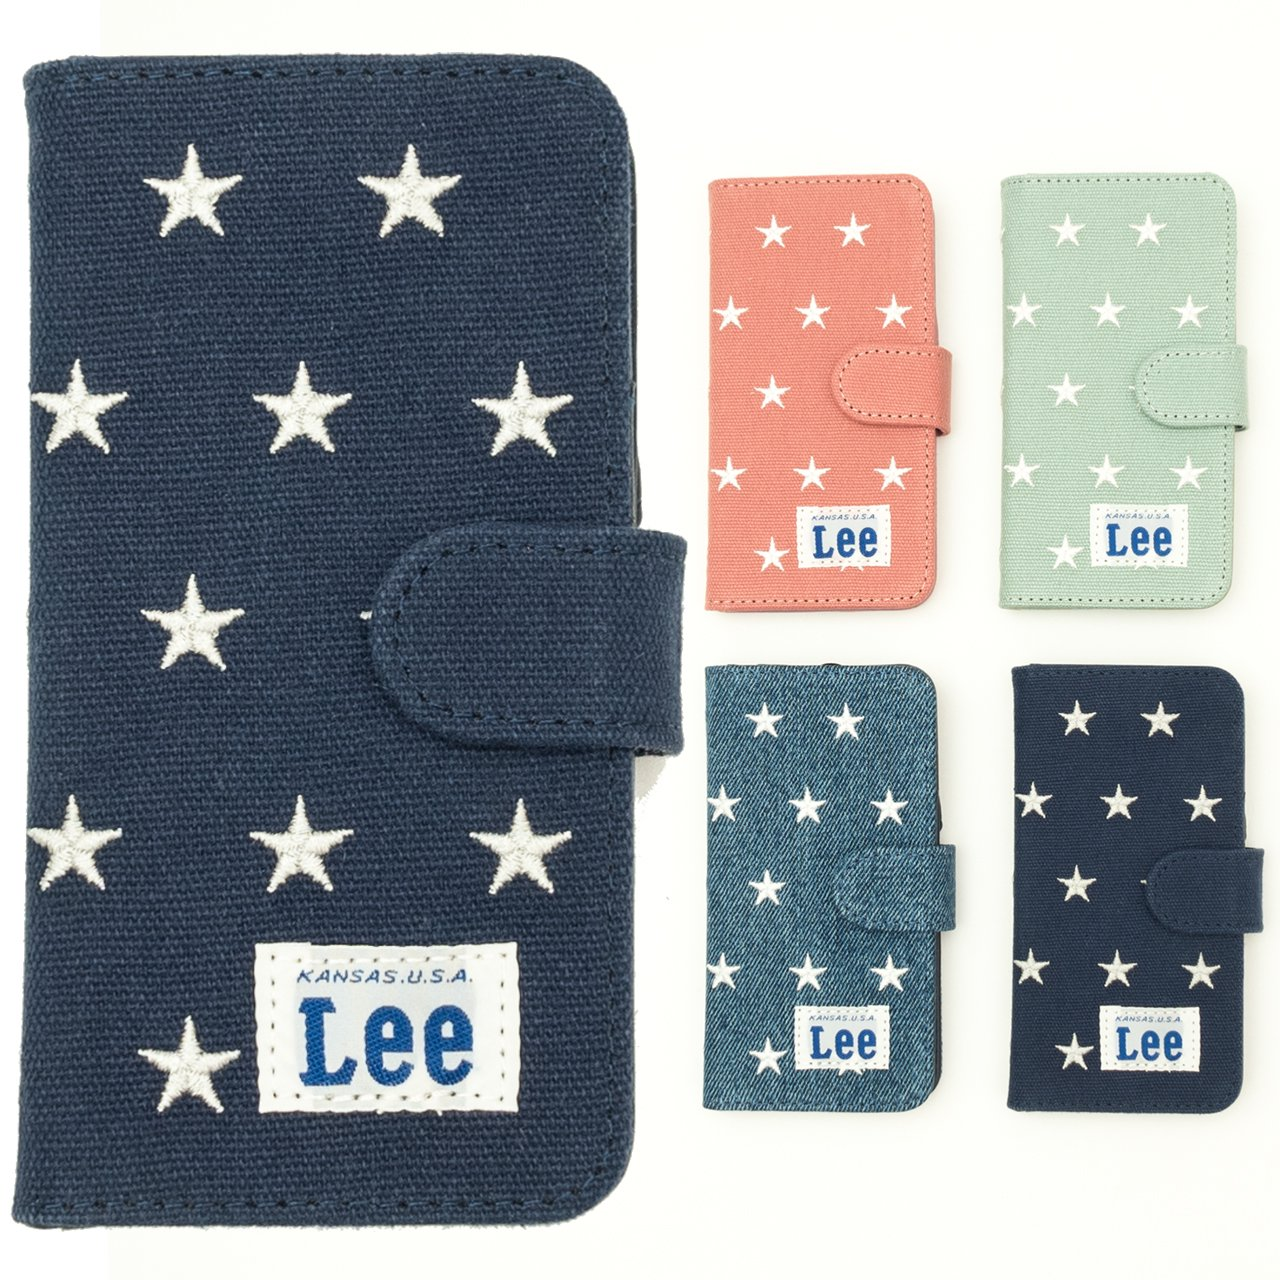 Star Mobilecase For iPhone 6/7/8